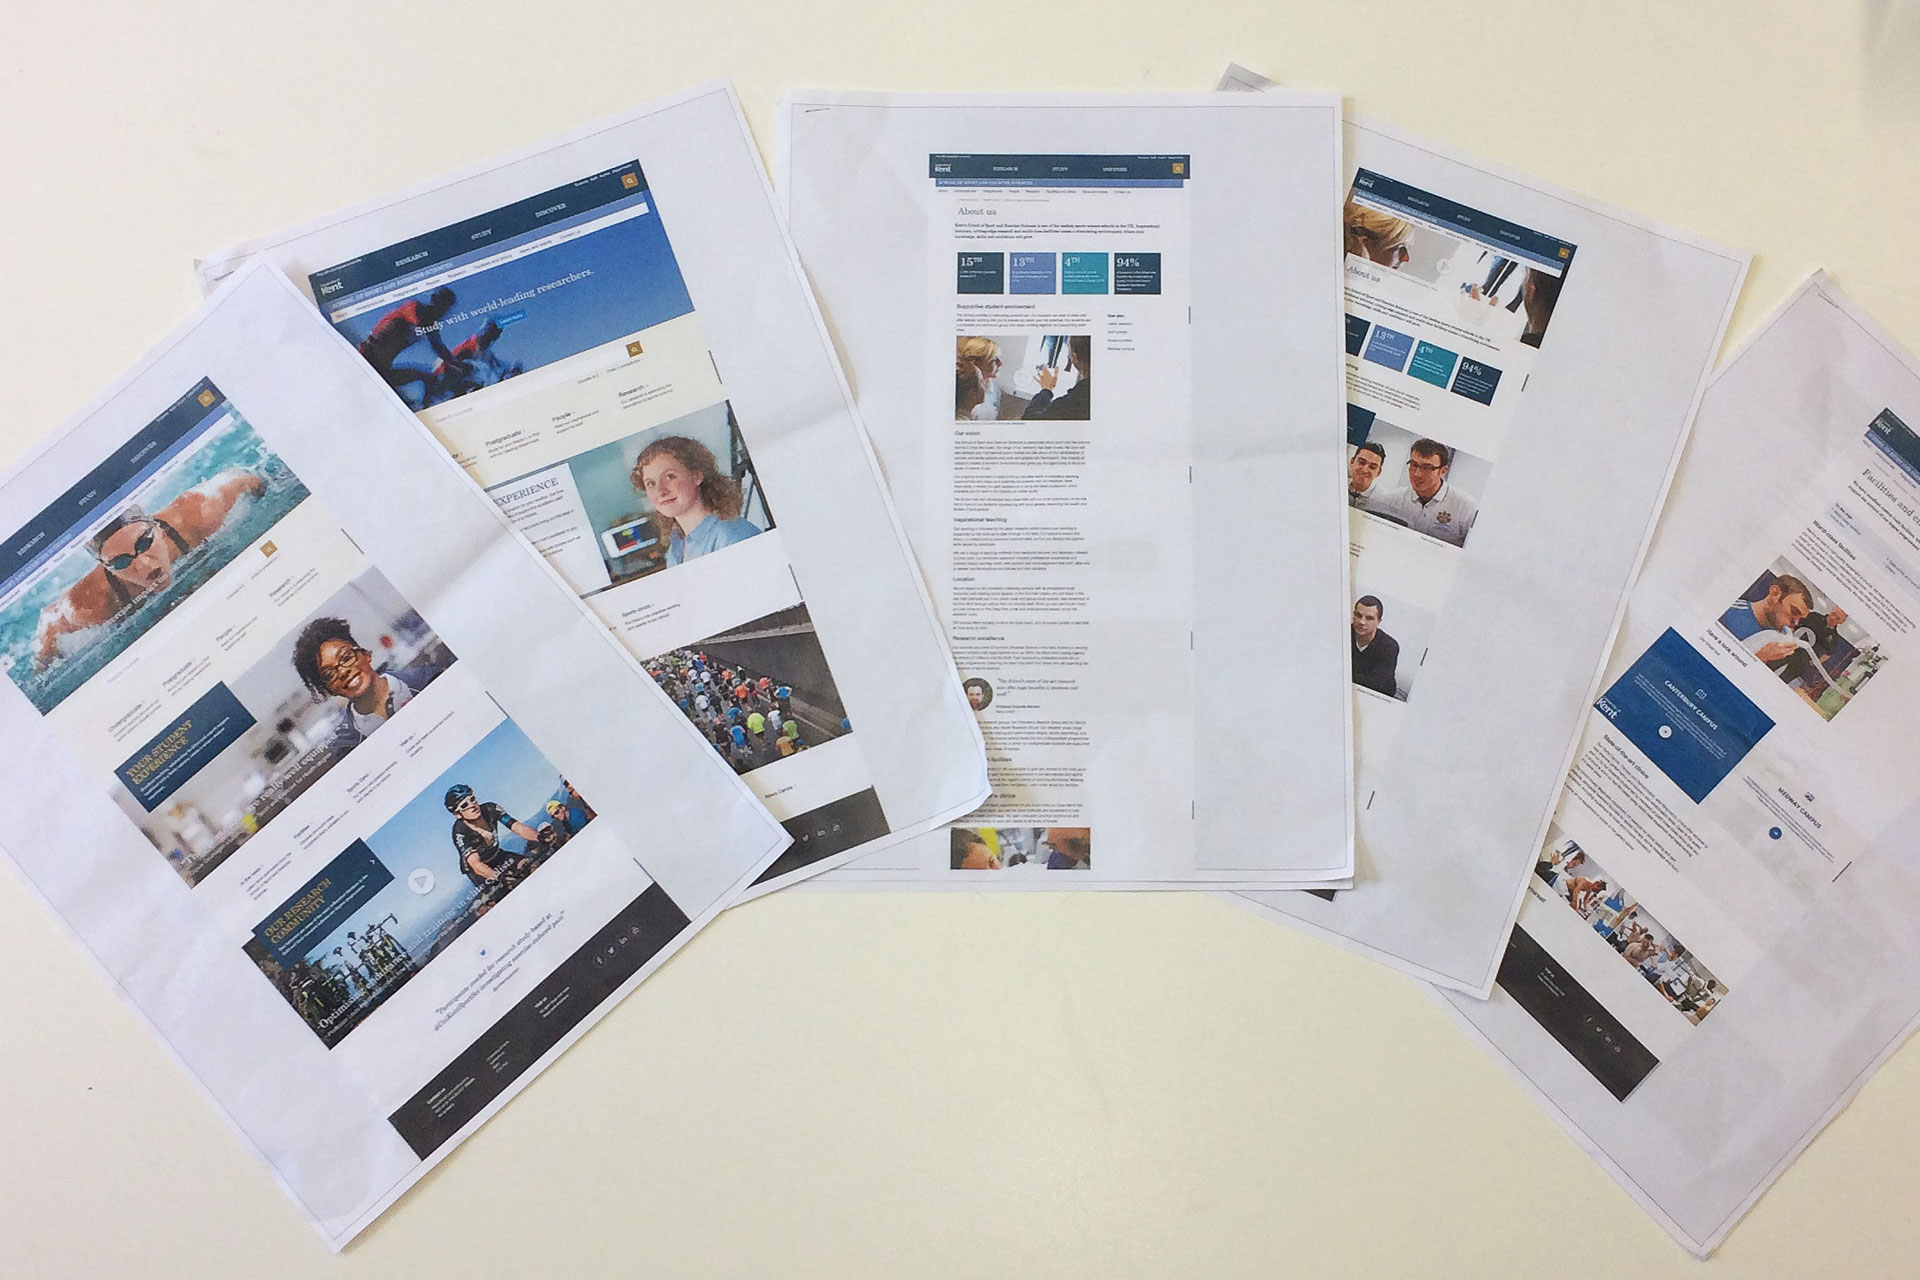 Selection of printouts used for user testing